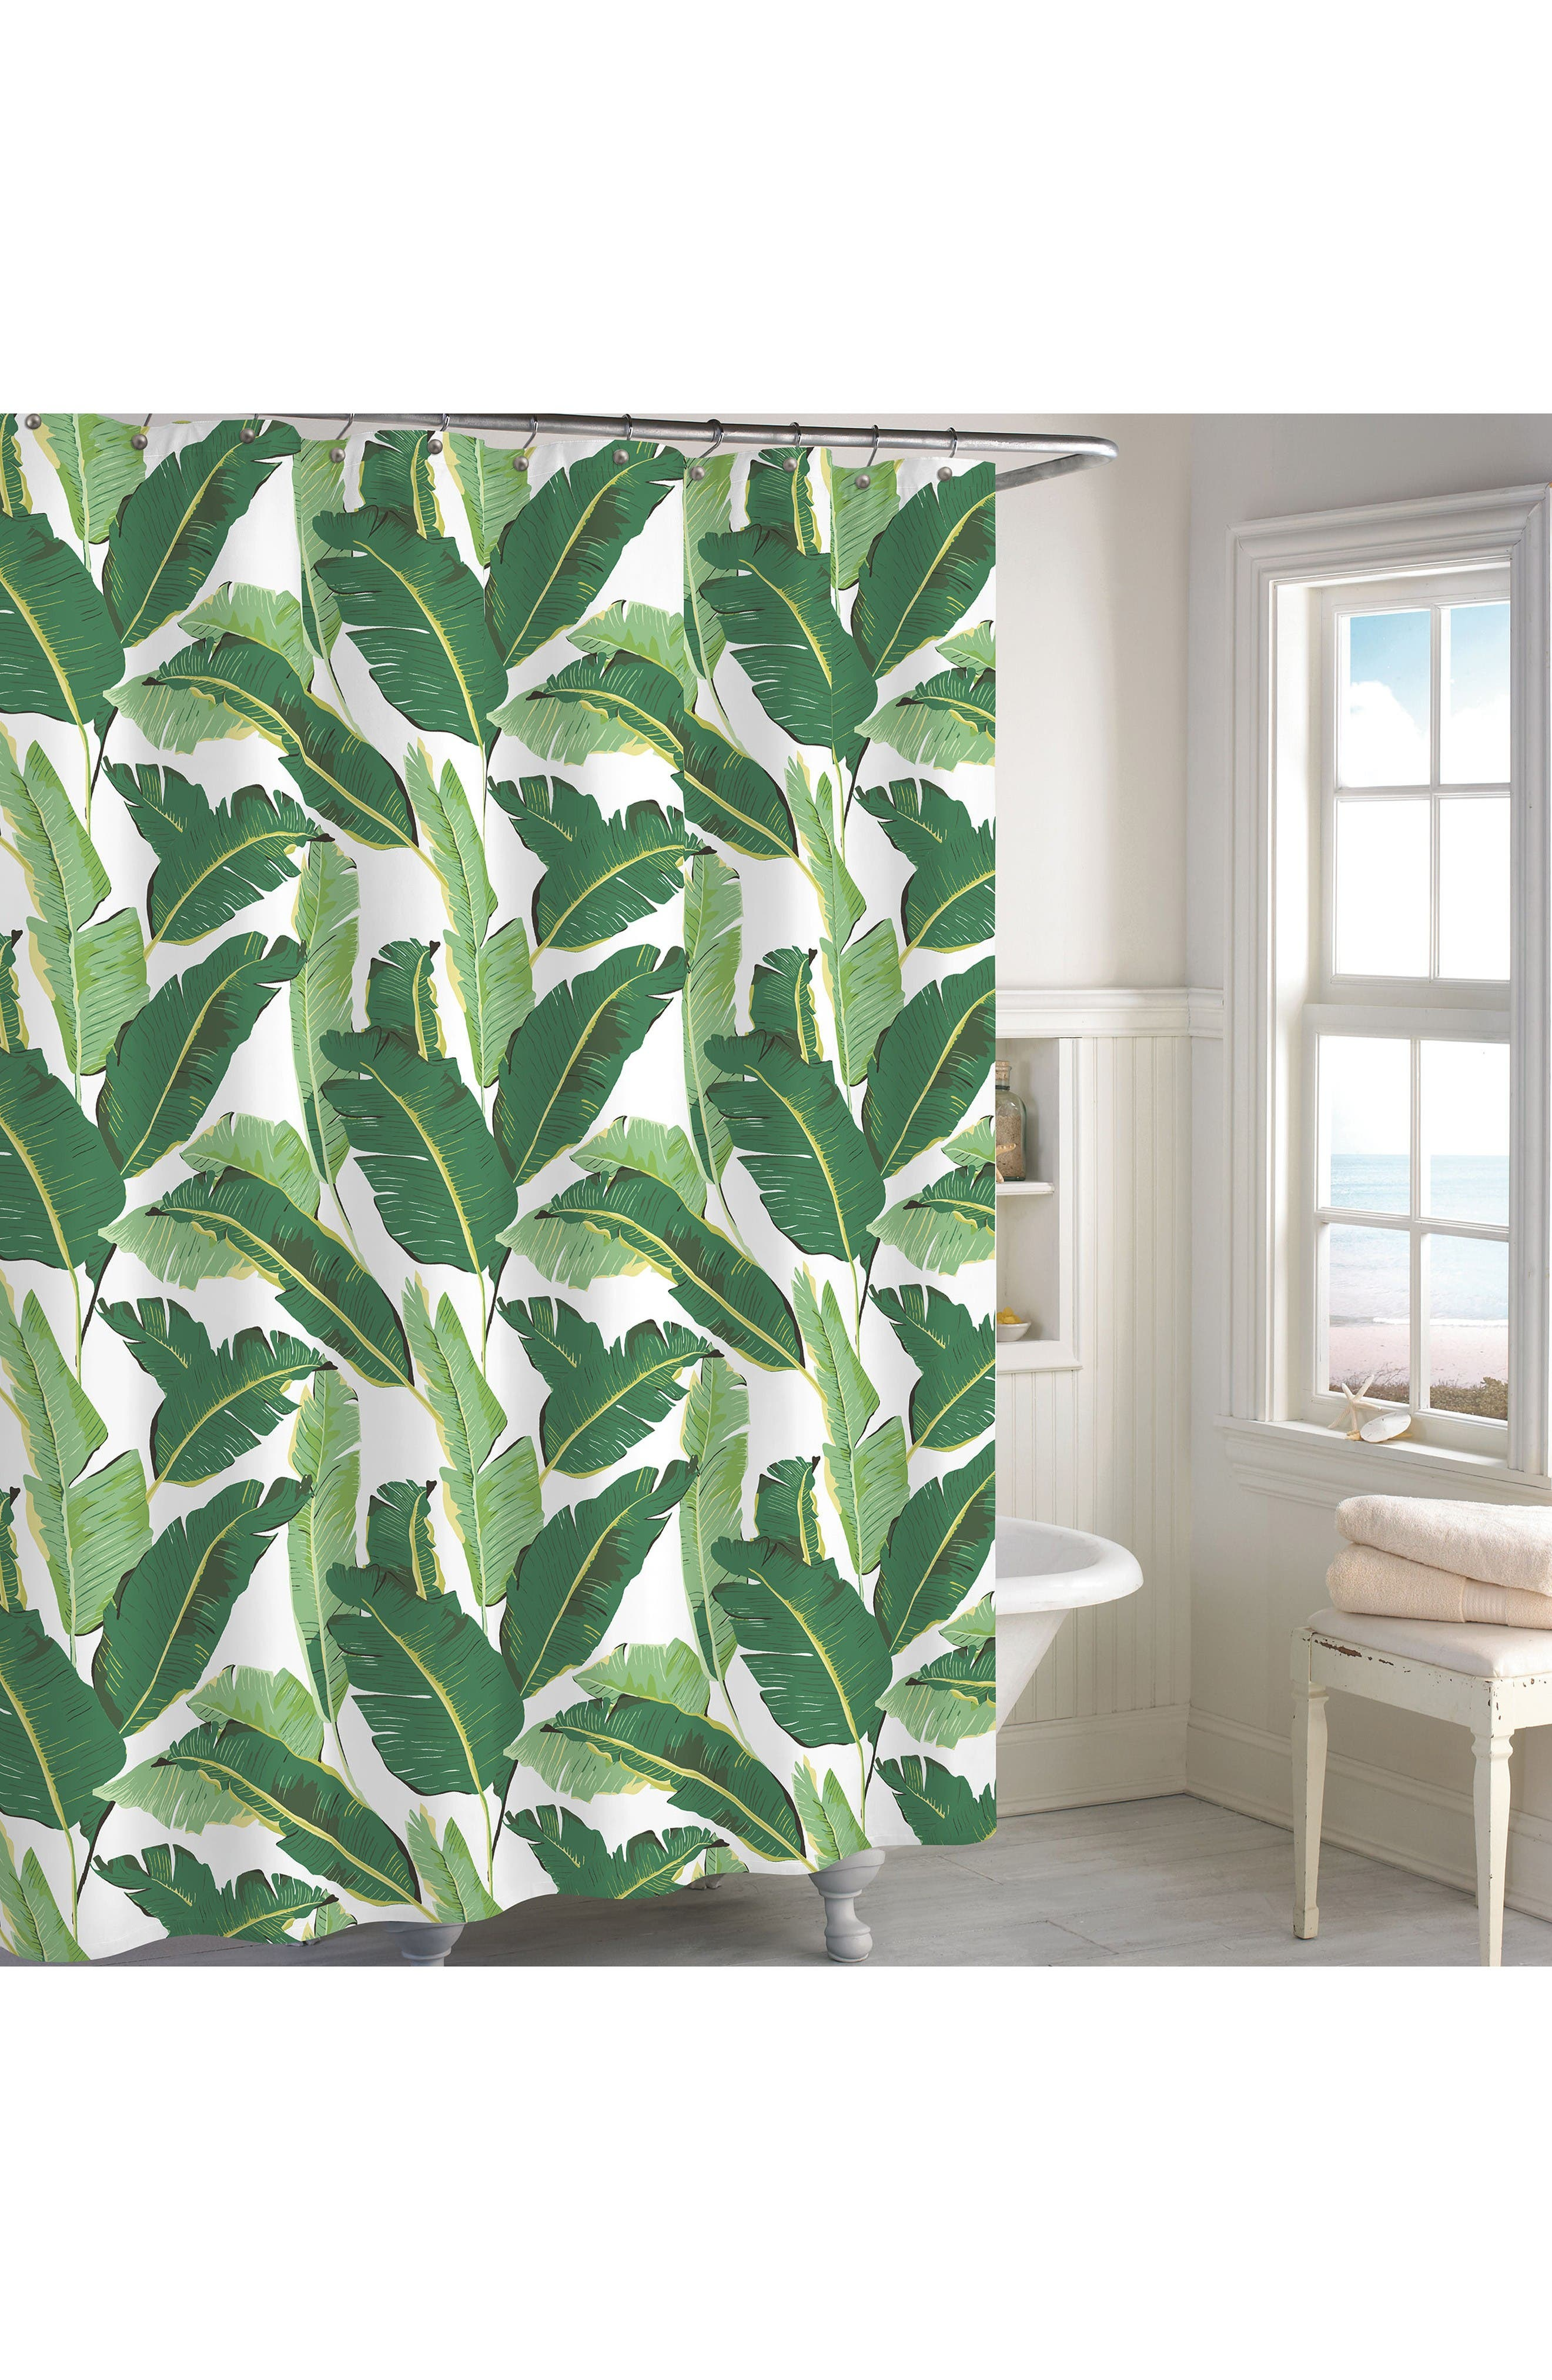 Palm shower curtain - Palm Shower Curtain 25